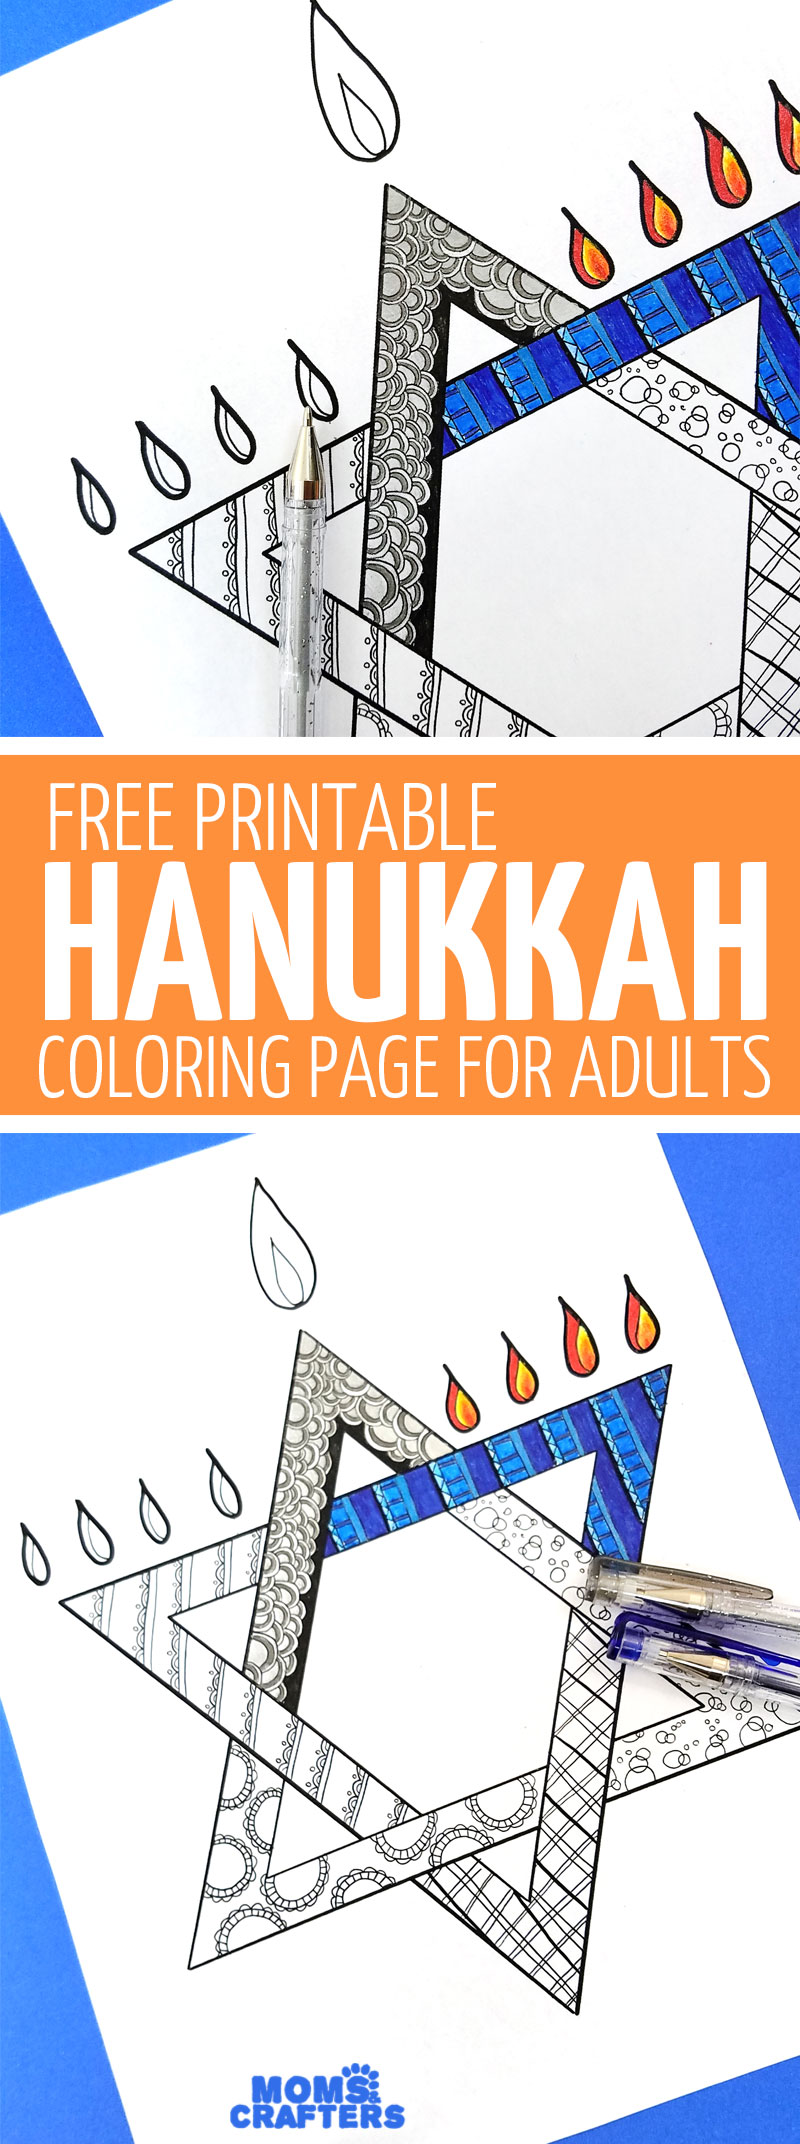 free printable hanukkah coloring page for adults moms